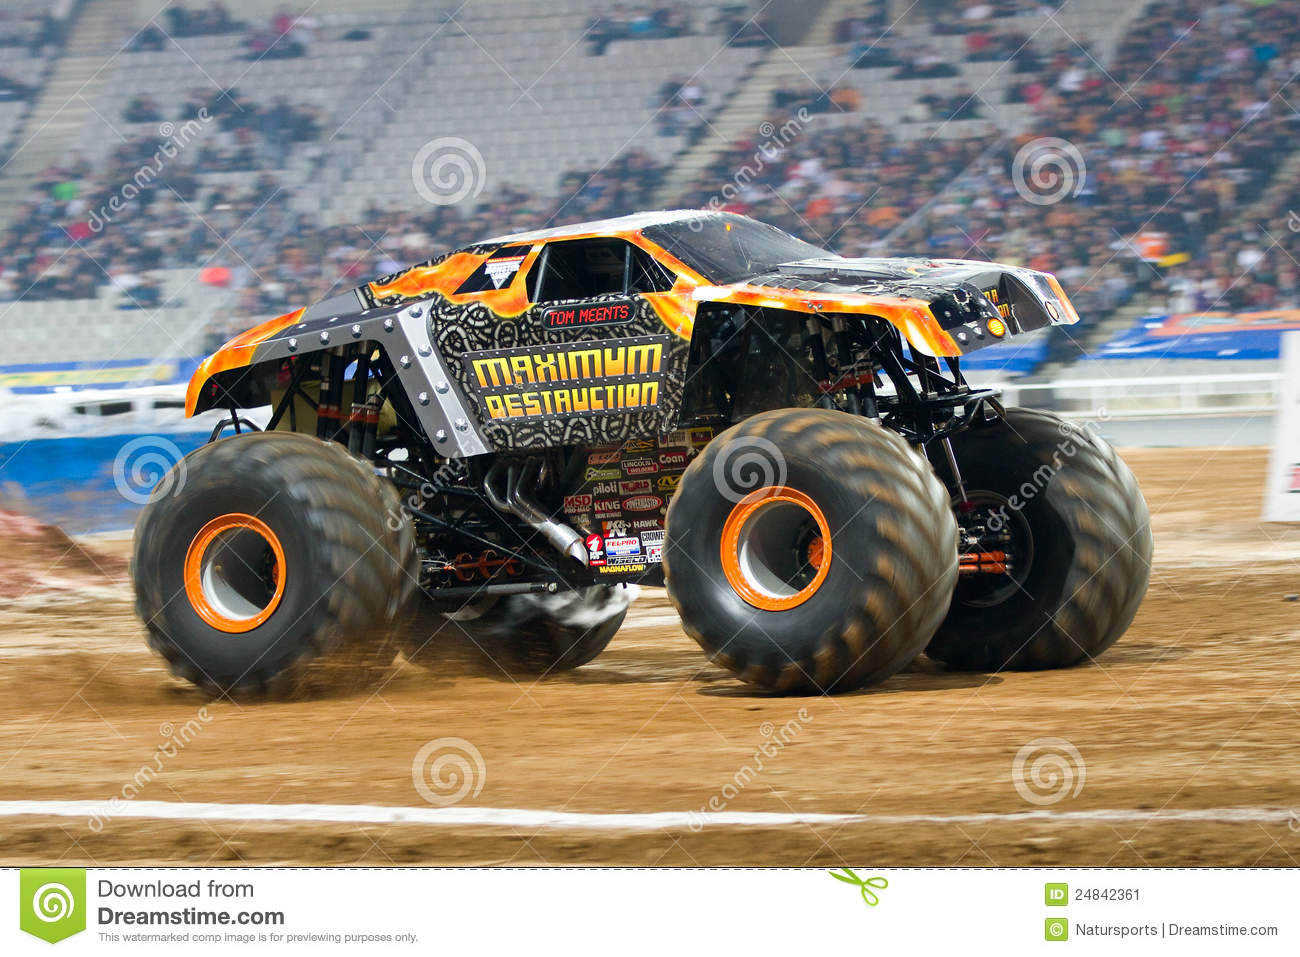 maximum destruction monster truck editorial photo image 24842361. Black Bedroom Furniture Sets. Home Design Ideas